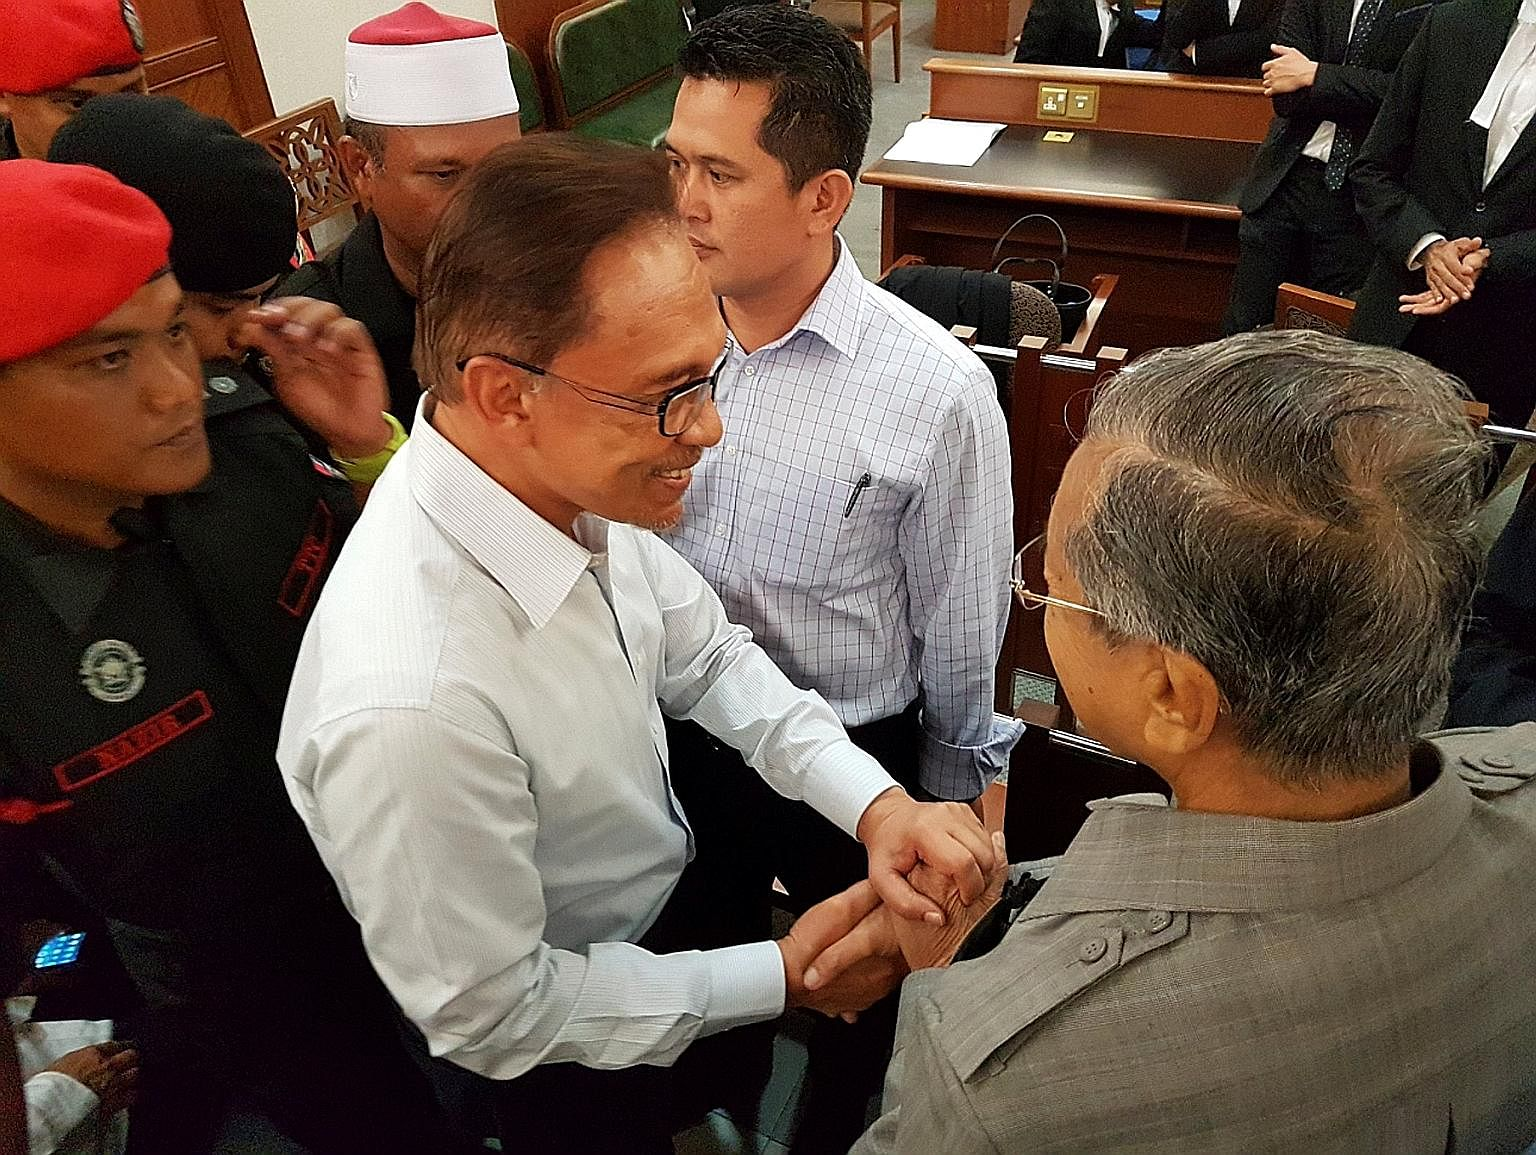 Malaysia's former prime minister, Dr Mahathir (right), shaking hands with Anwar at the Kuala Lumpur High Court on Monday - a gesture that led many to wonder if this could be the start of a new chapter in the country's politics.